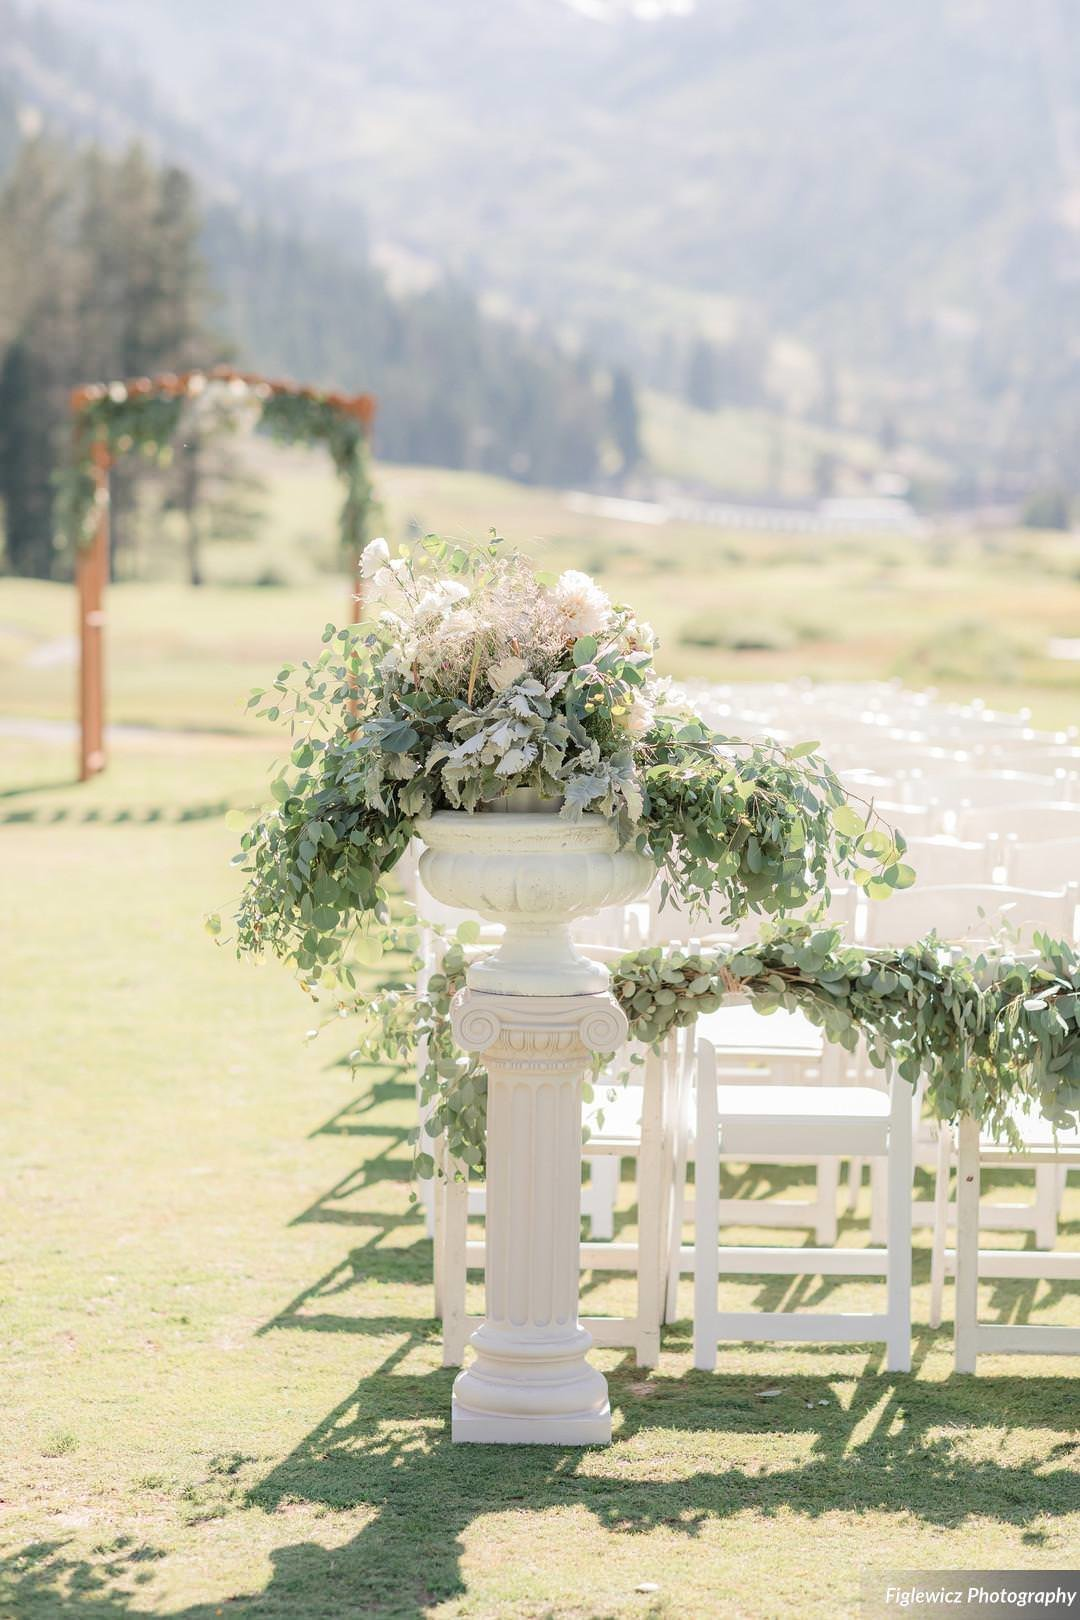 Garden_Tinsley_FiglewiczPhotography_LakeTahoeWeddingSquawValleyCreekTaylorBrendan00082_big